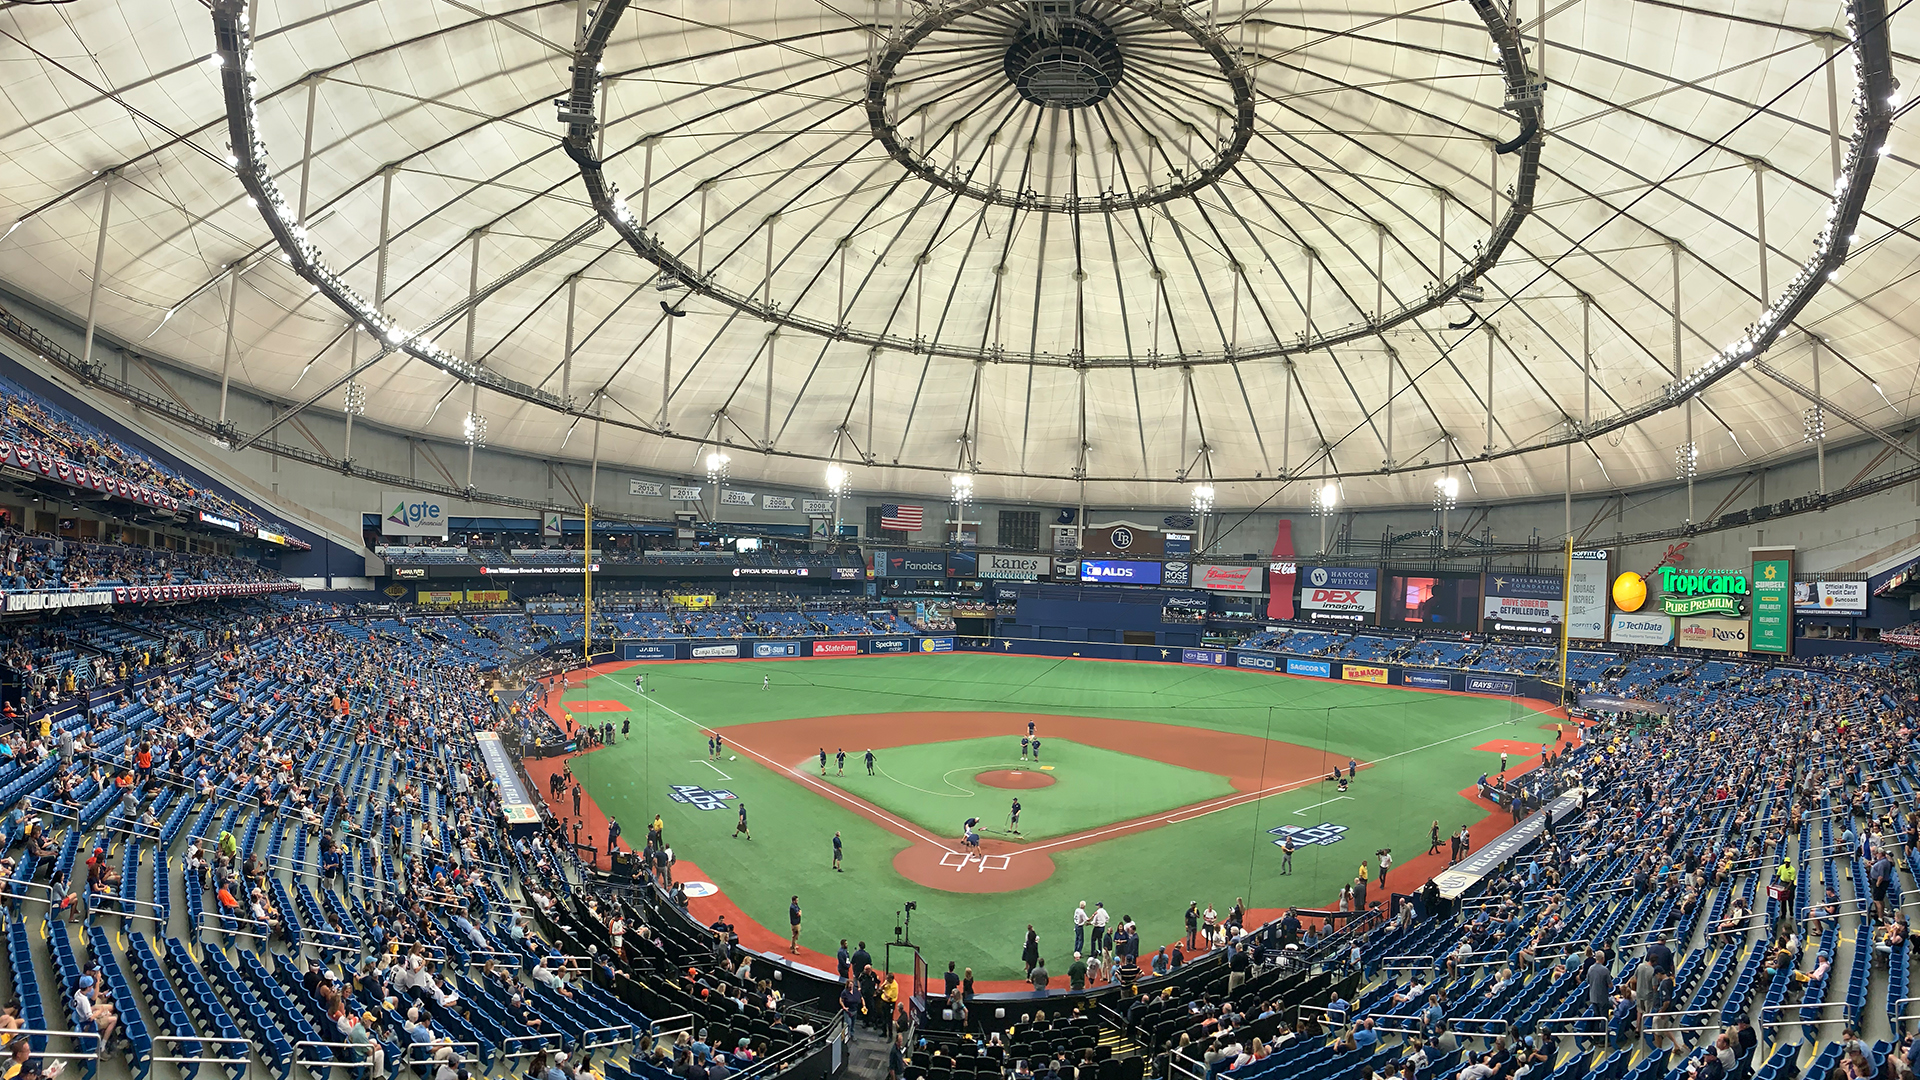 Family travels 4 hours to St. Pete to watch Rays playoff game